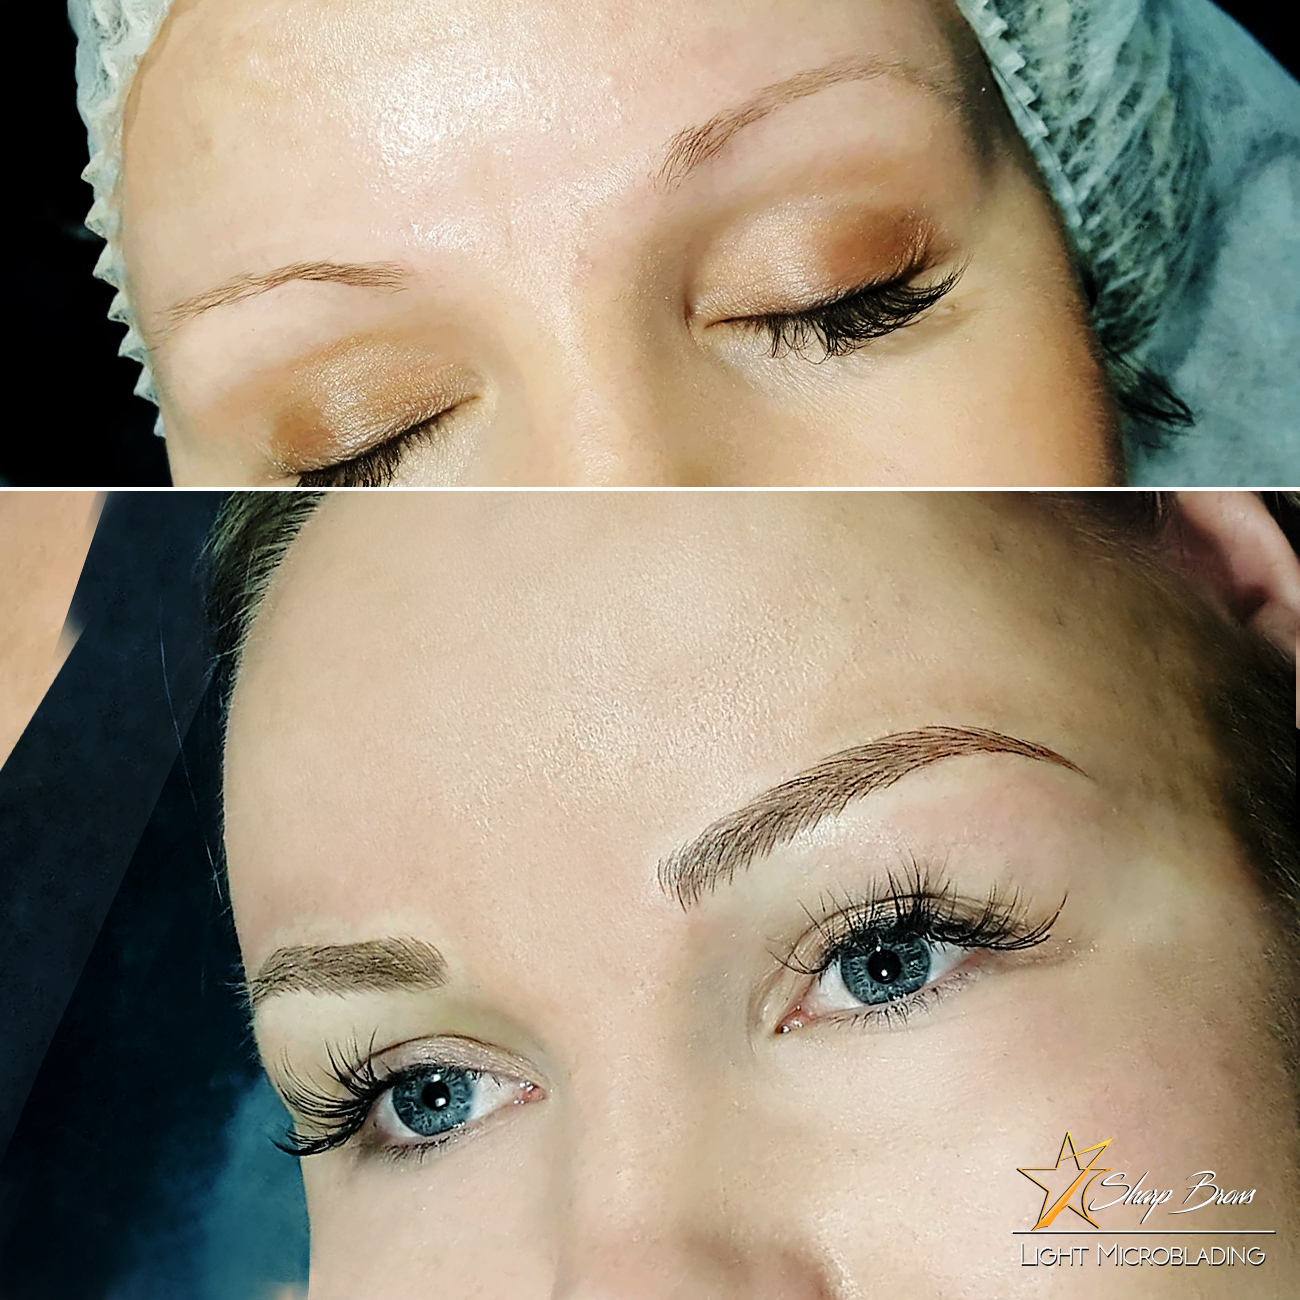 Even the customer herself was really surprised with the results. SharpBrows Light microblading changes the overall expression of the face completely.